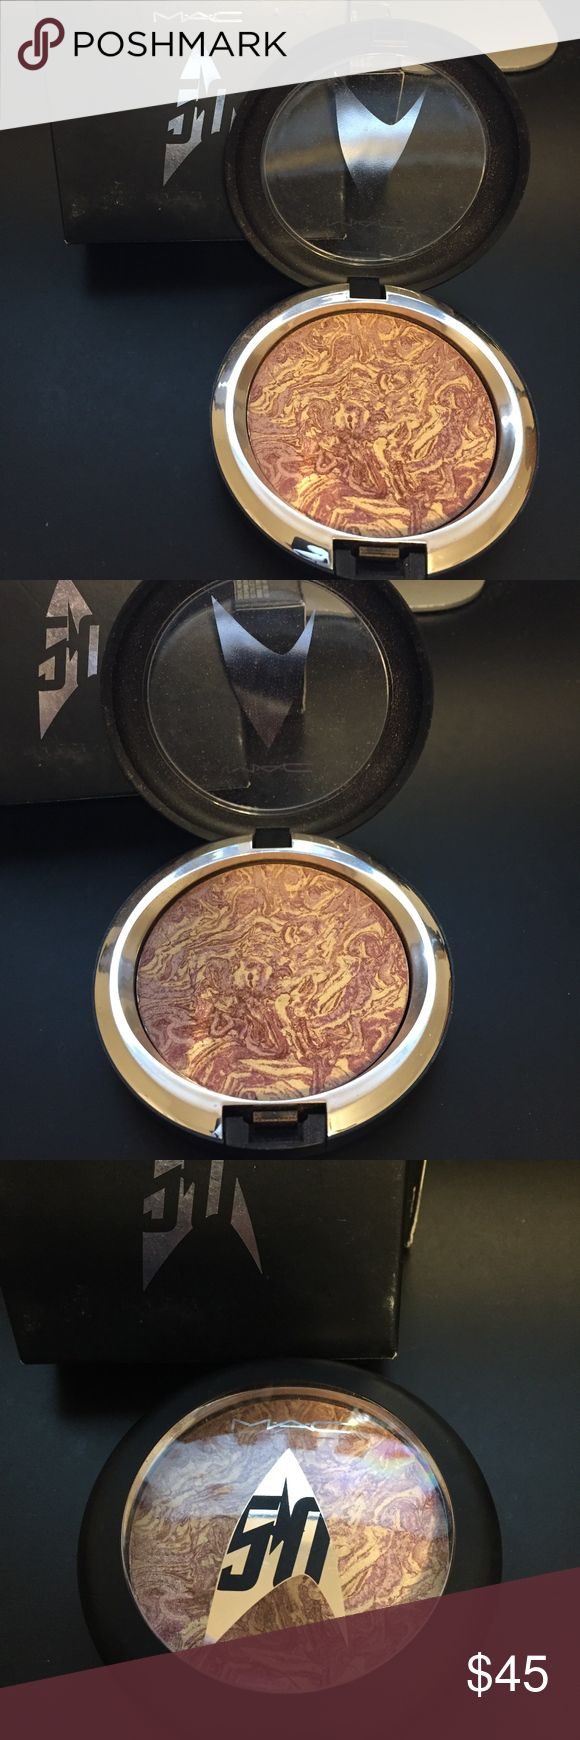 MAC Trip the light Fantastic Powder Limited ED One Authentic Ster trek collection trip the light fantastic Powder. Shade is: Highly Illogical. MAC Cosmetics Makeup